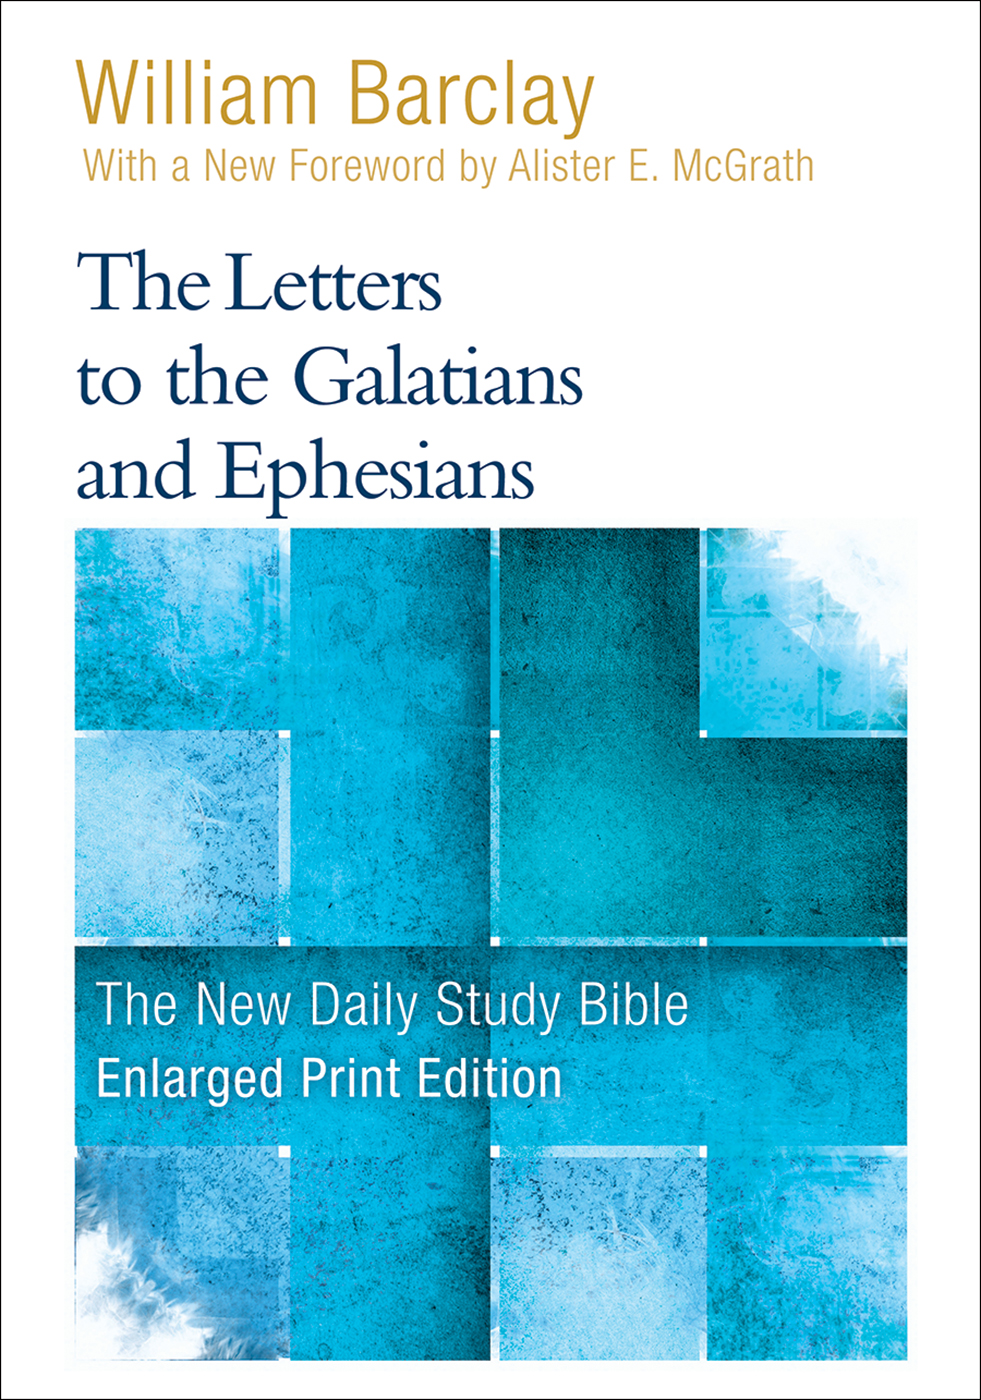 The Letters to the Galatians and Ephesians-Enlarged